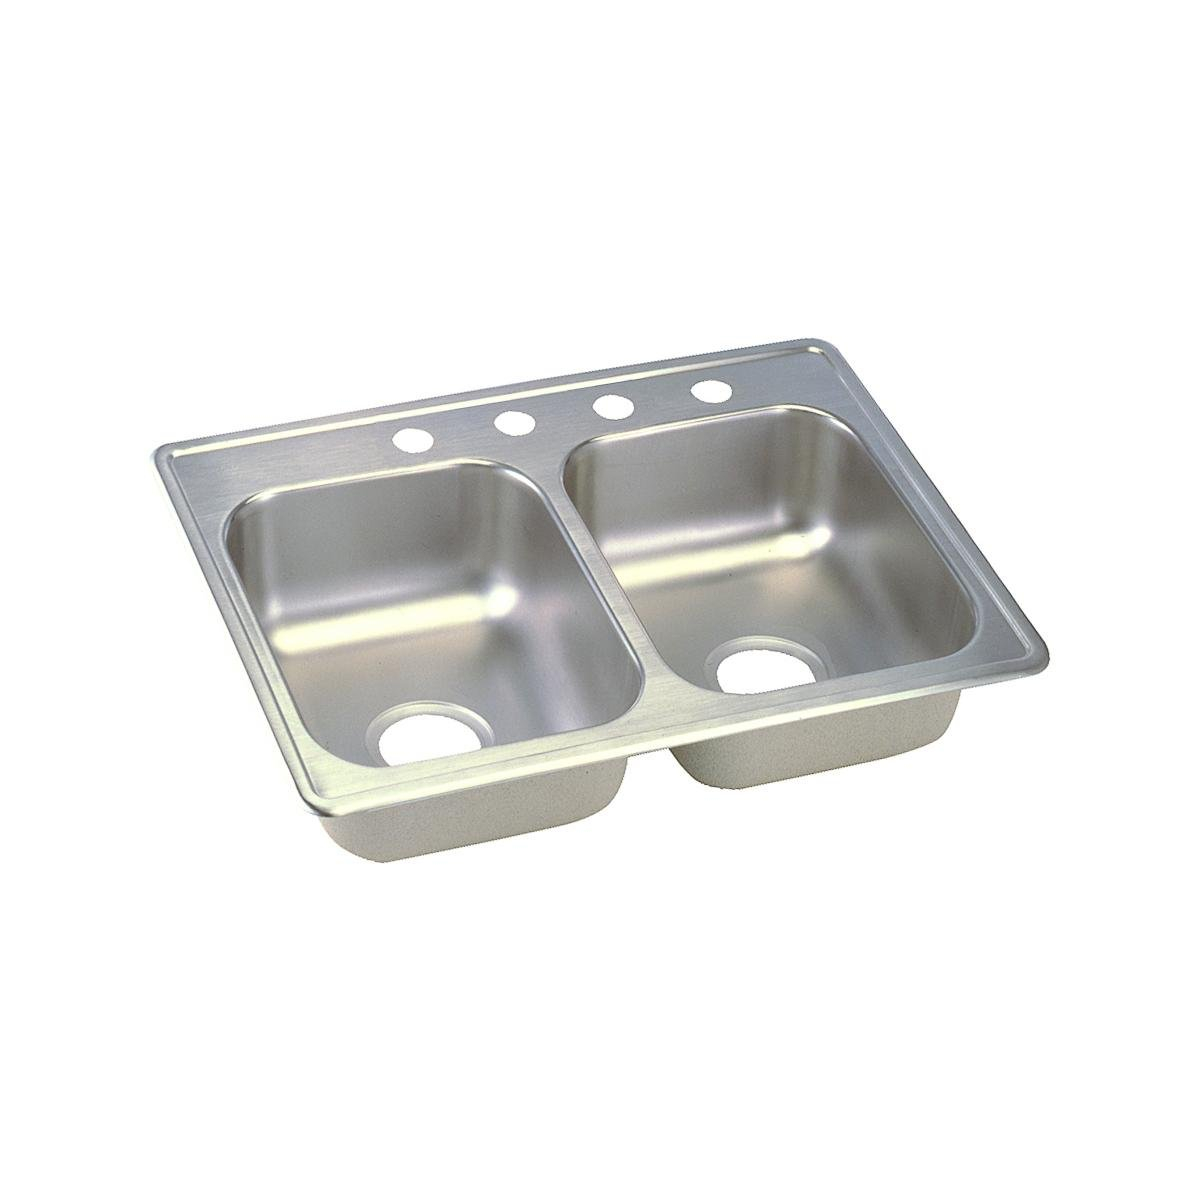 Dayton D225194 Equal Double Bowl Top Mount Stainless Steel Sink by Elkay